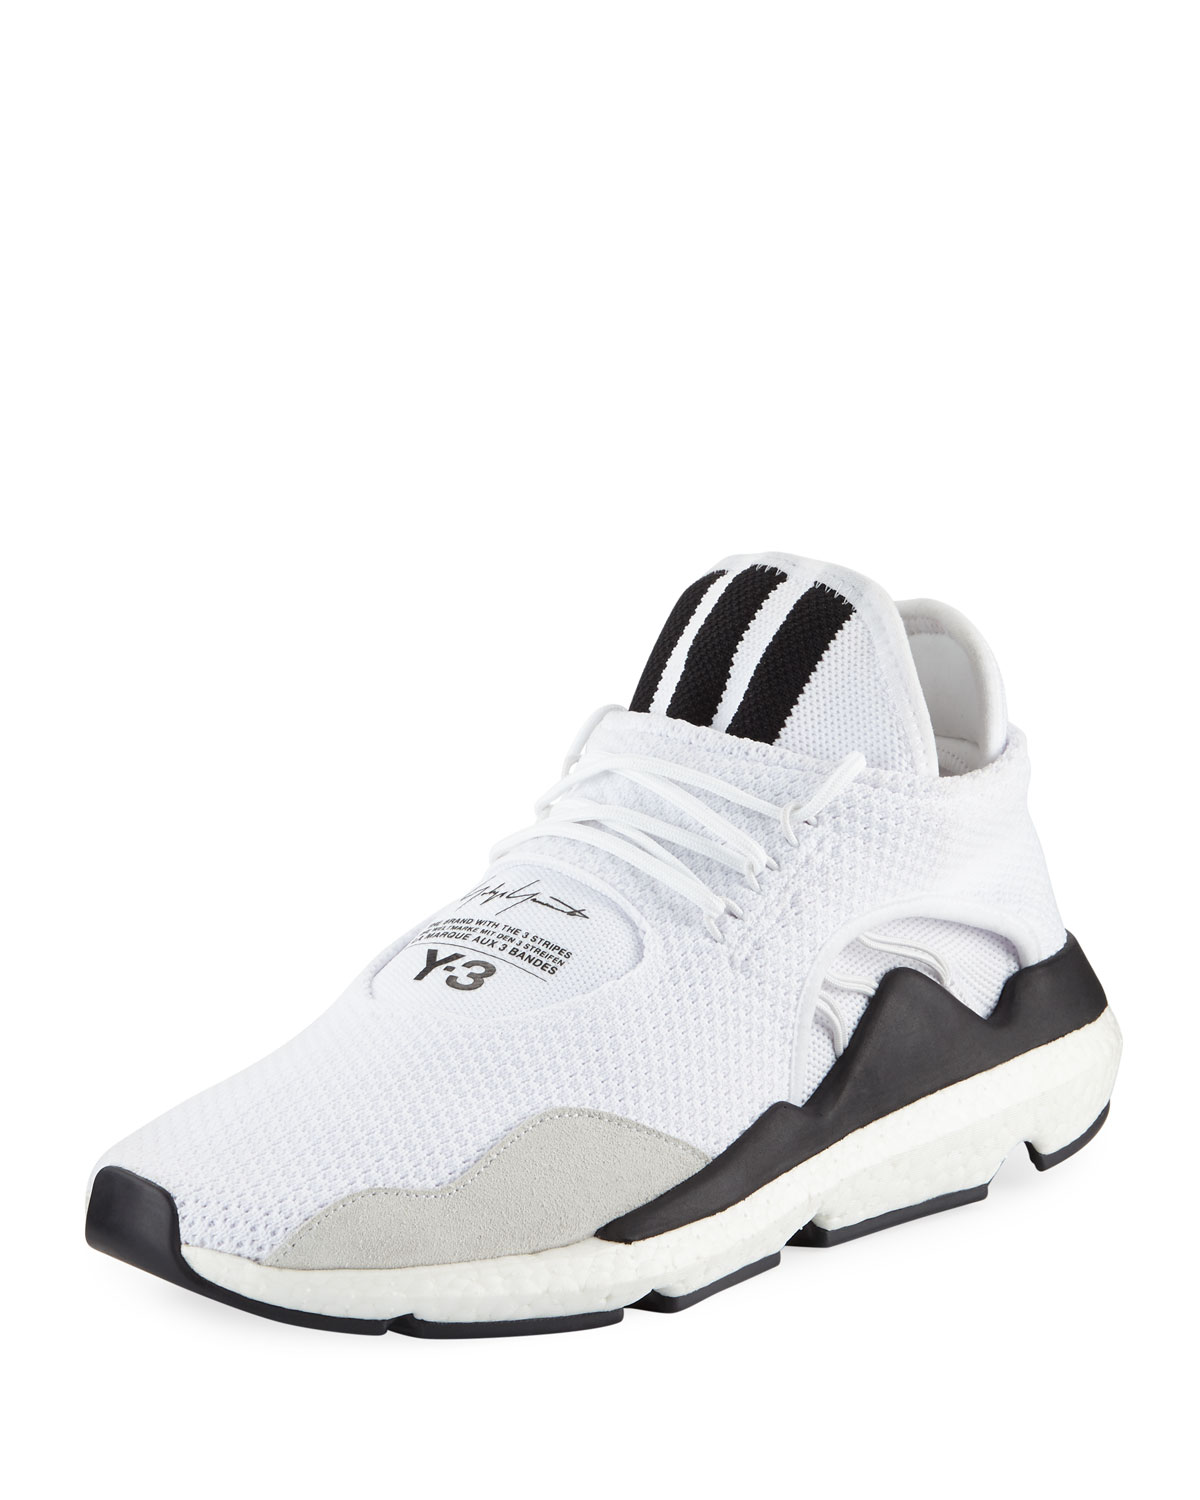 Y-3 Men s Saikou Boost Prime-Knit Sneakers  66cfdca4e